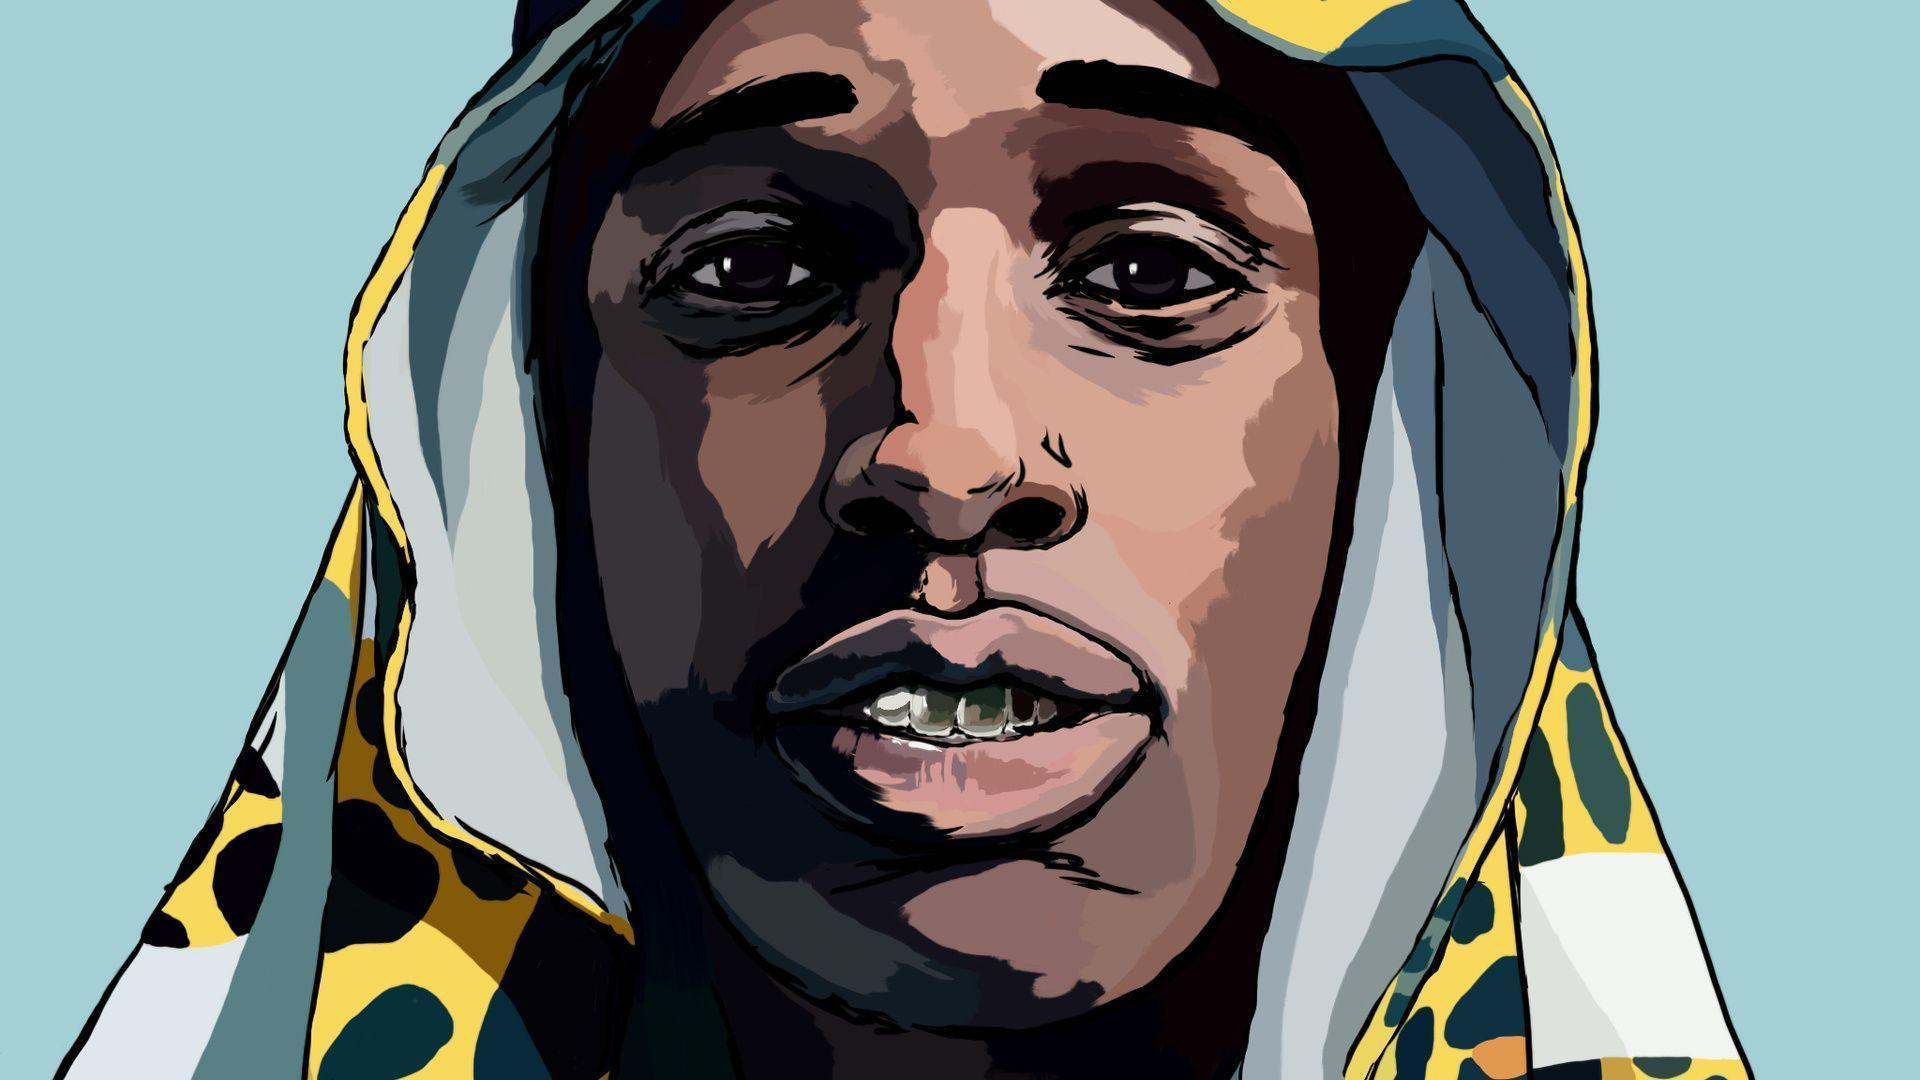 asap rocky wallpaper android